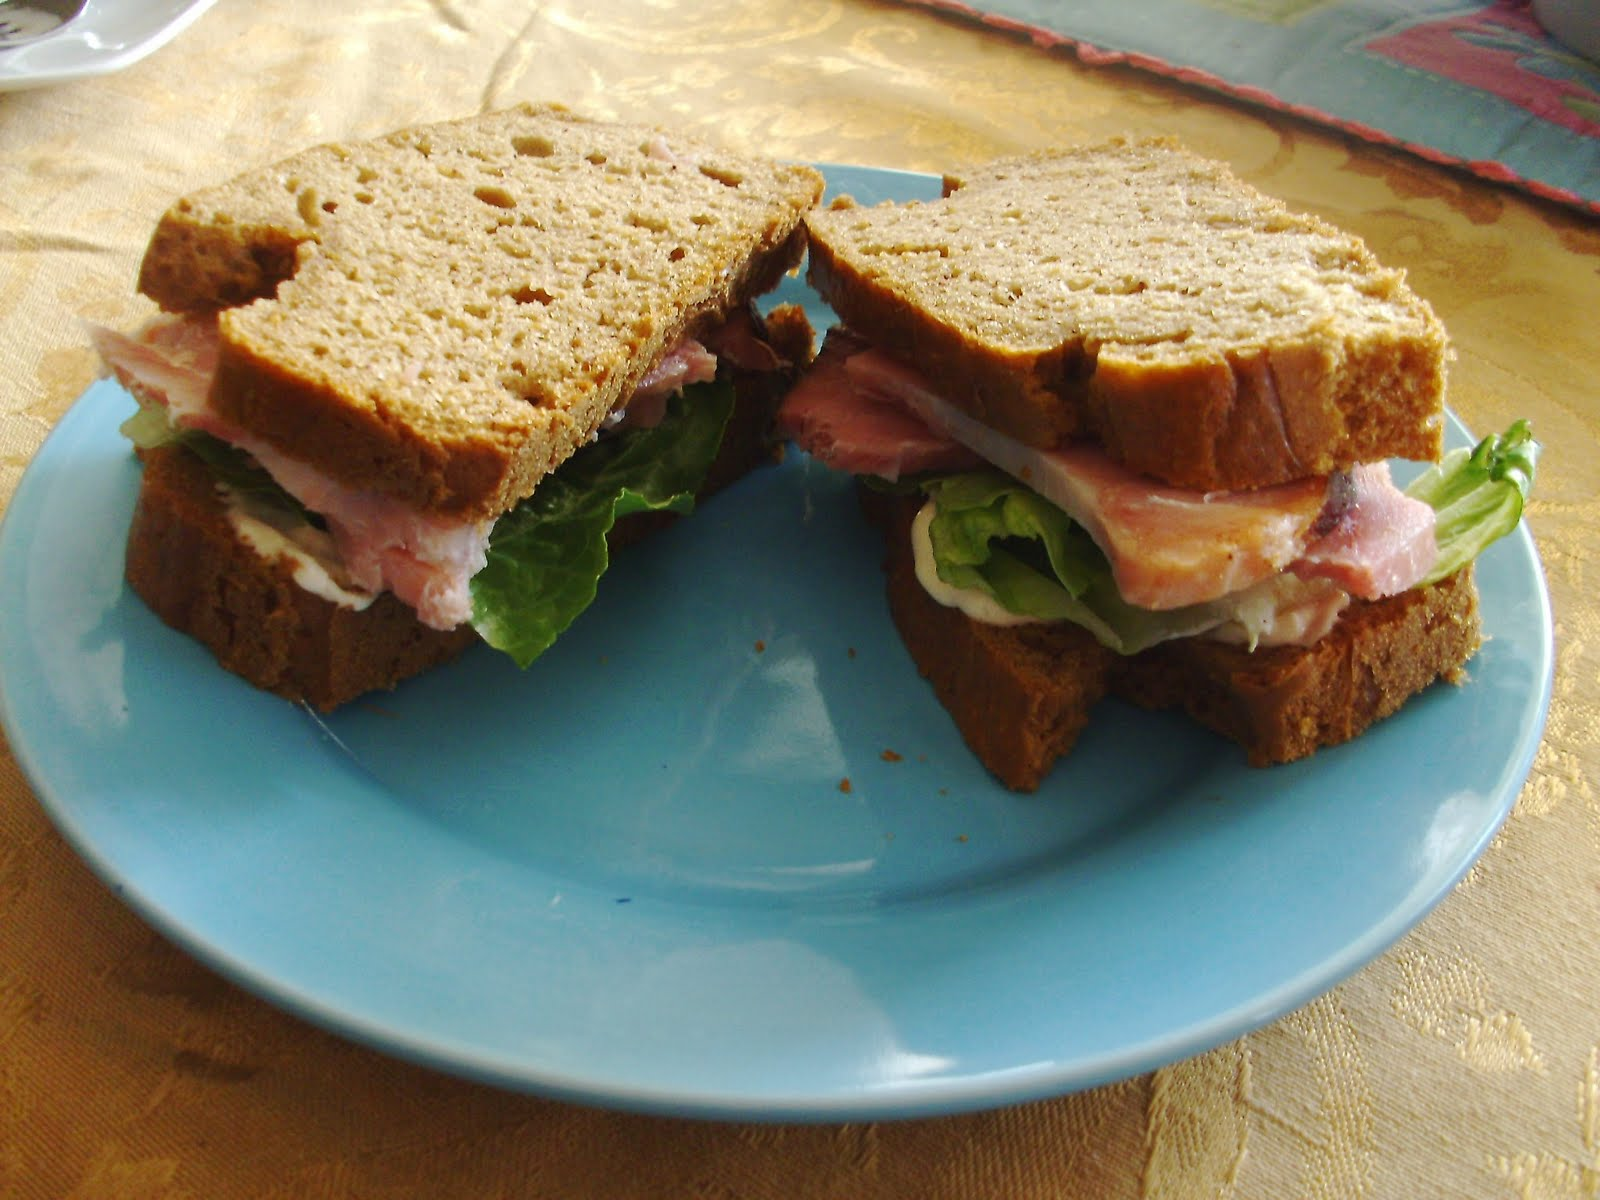 Healthy sandwich prepared at home